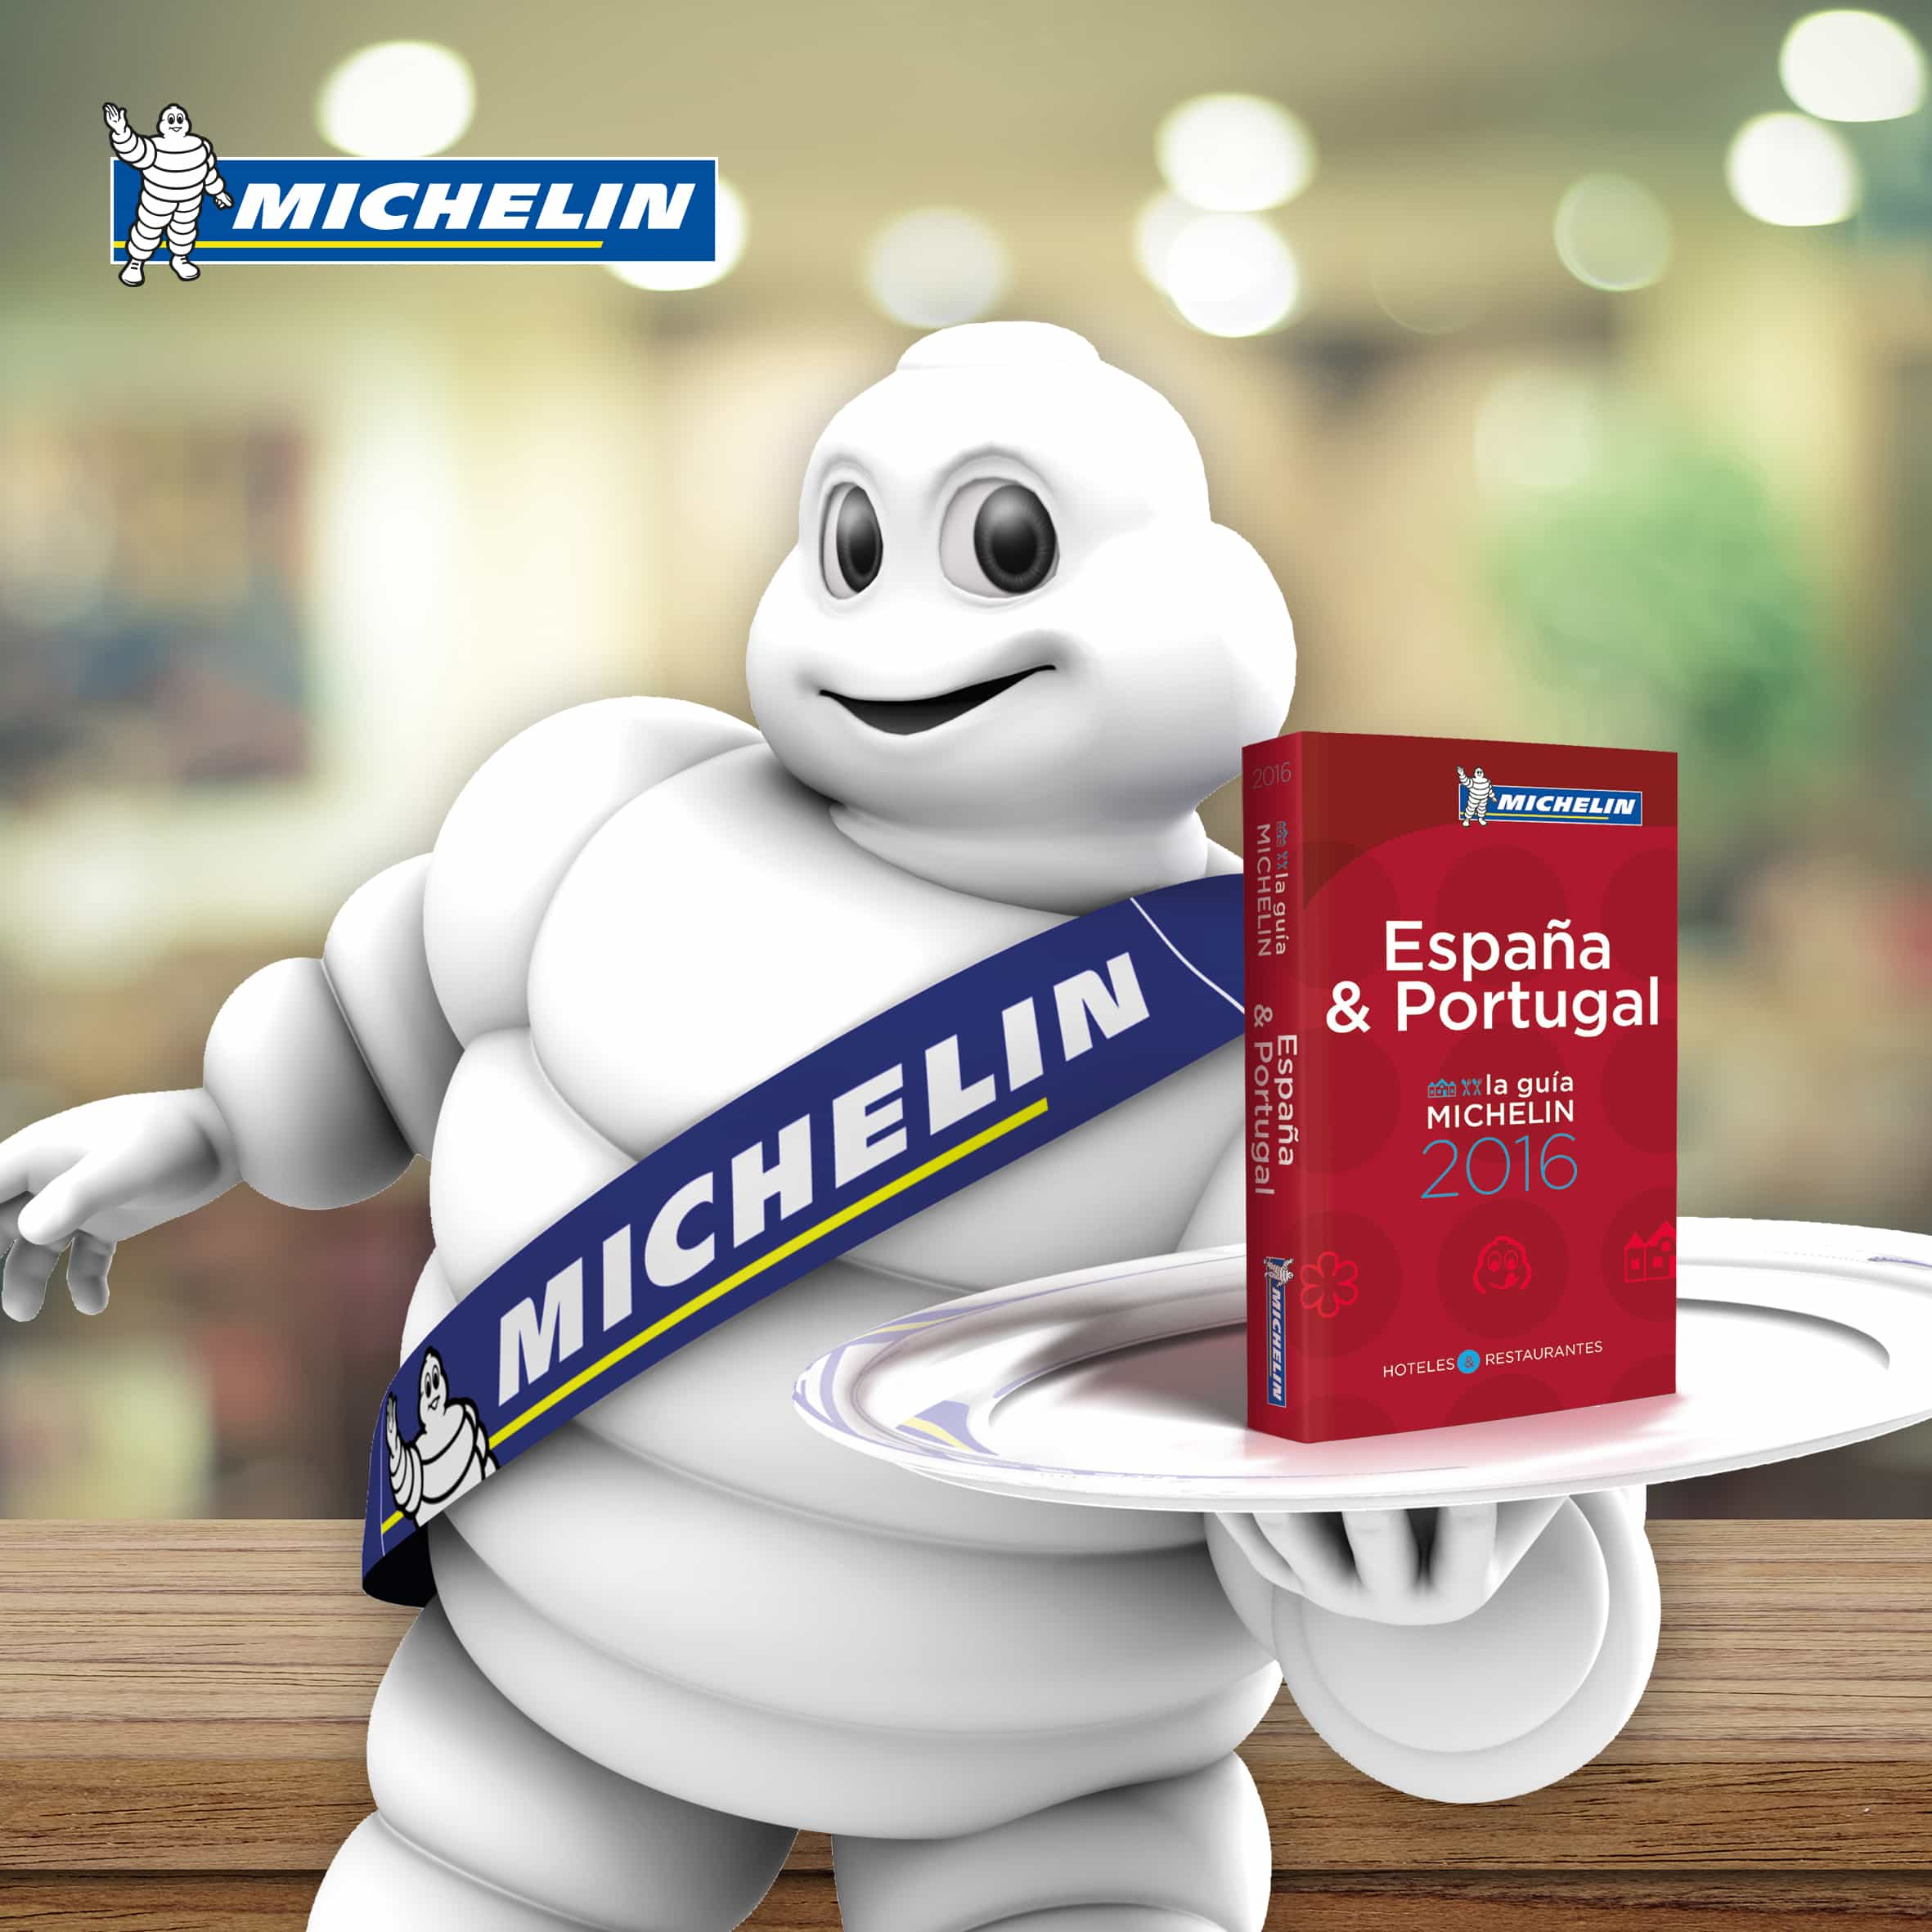 michelin star system Michelin guides (french: guide michelin [ɡid miʃlɛ̃]) are a series of guide books published by the french tyre company michelin for more than a century the term normally refers to the annually published michelin red guide, the oldest european hotel and restaurant reference guide, which awards up to three michelin stars for excellence to a select few establishments.